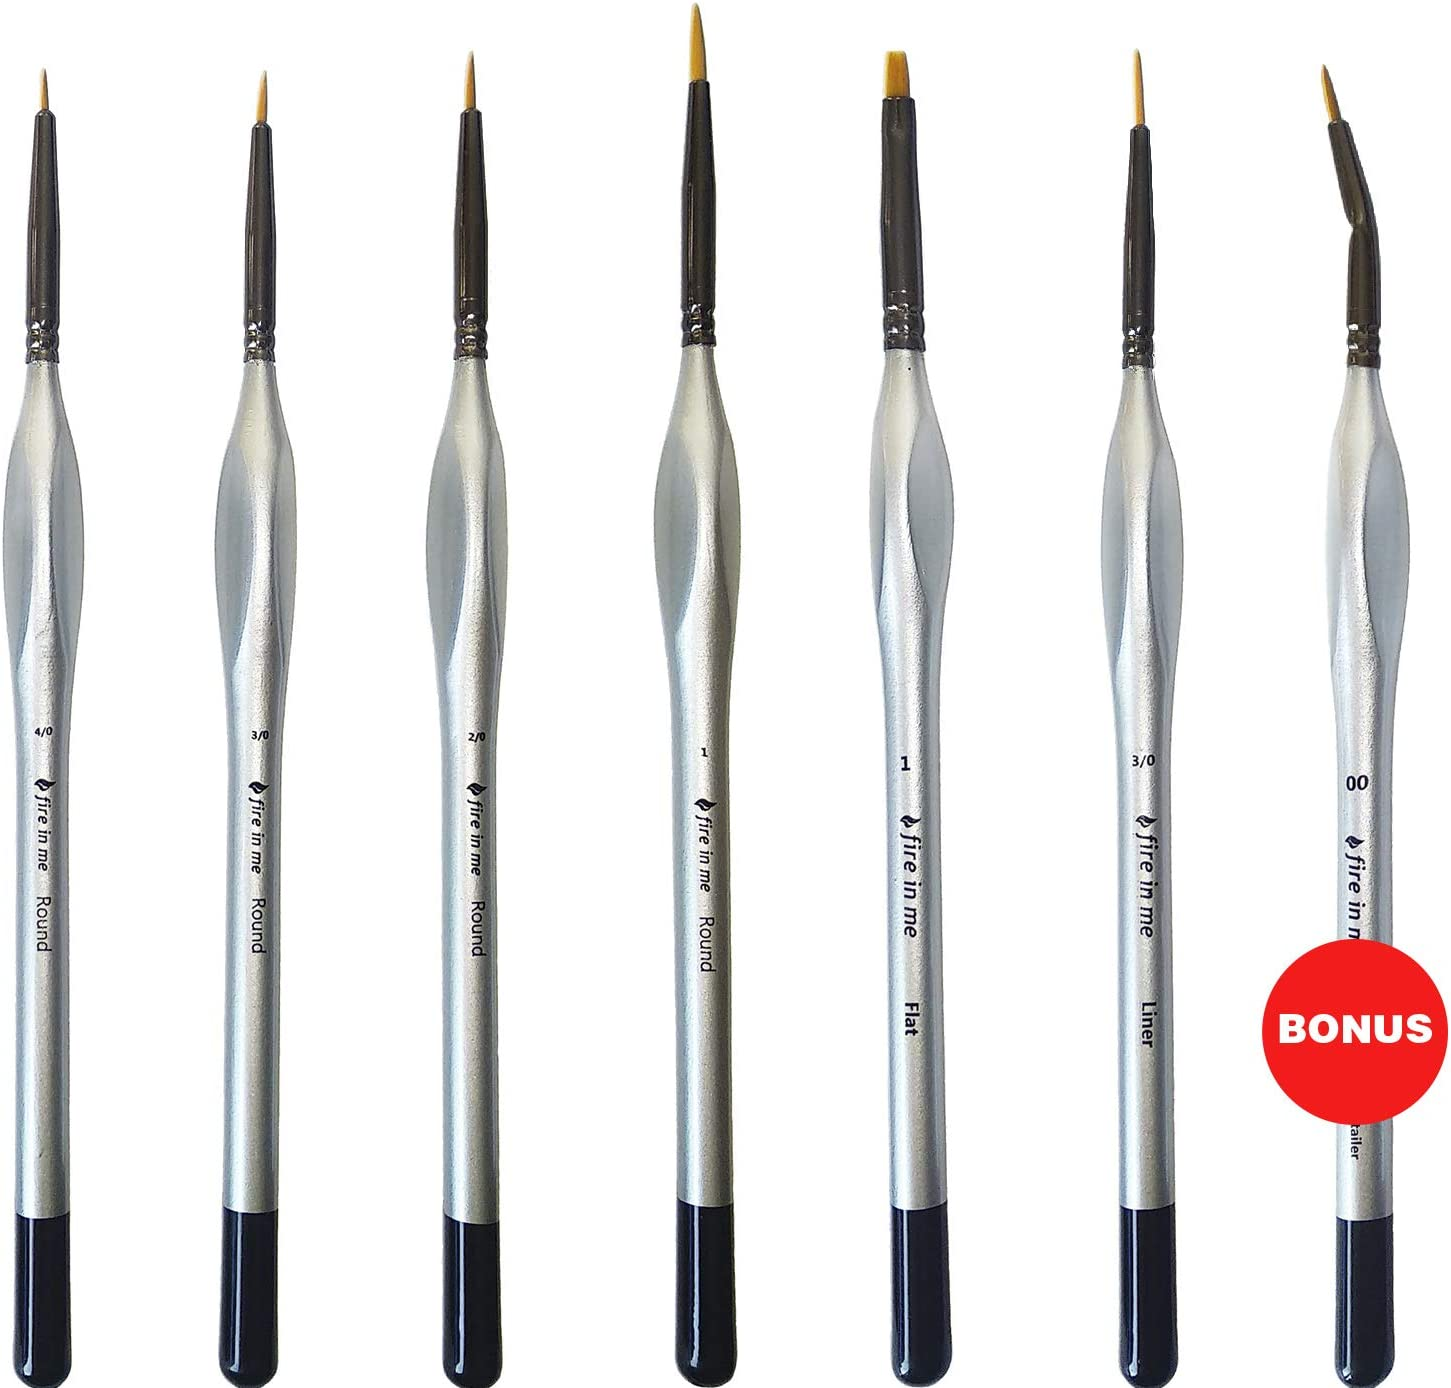 Miniature Paint Brush Set 6pcs + 1 Free - Best Find Detail Paint Brushes Model Paint Brush Set - Small Tiny Oil Watercolor Acrylic Brushes Hobby Art Supplies